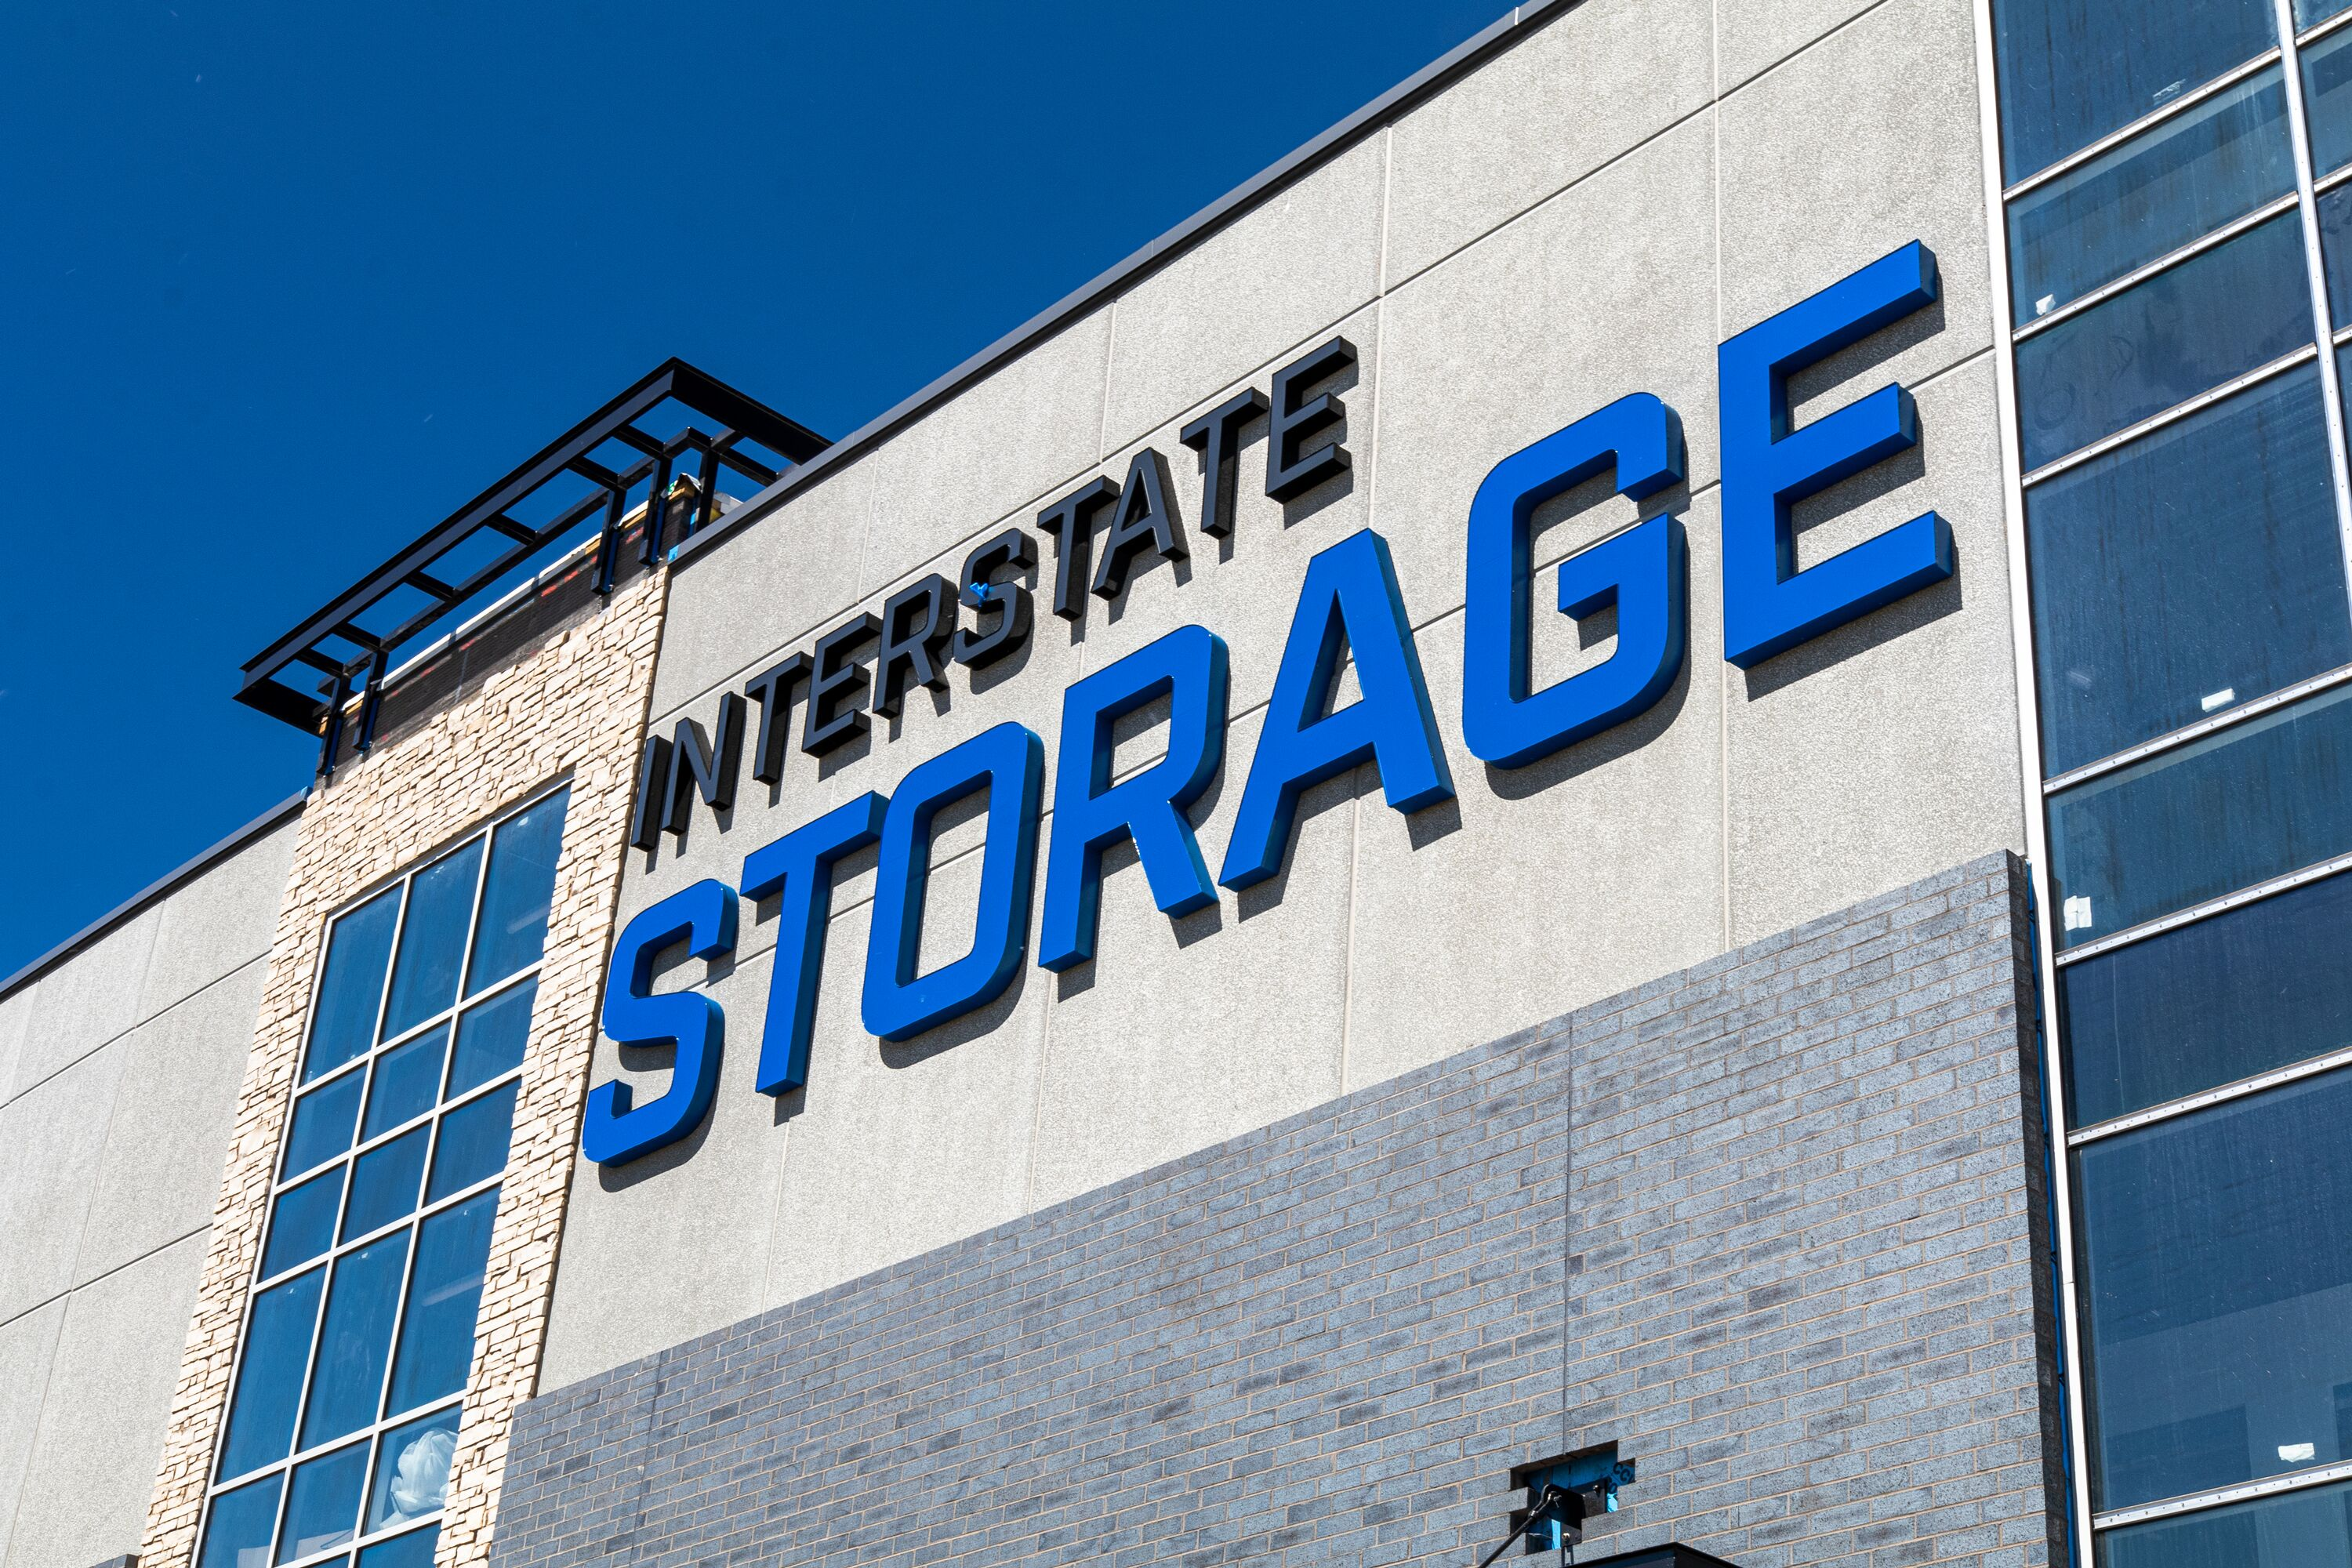 Interstate Storage Lakeville Building Front Sign Minnesota Twin Cities Burnesville